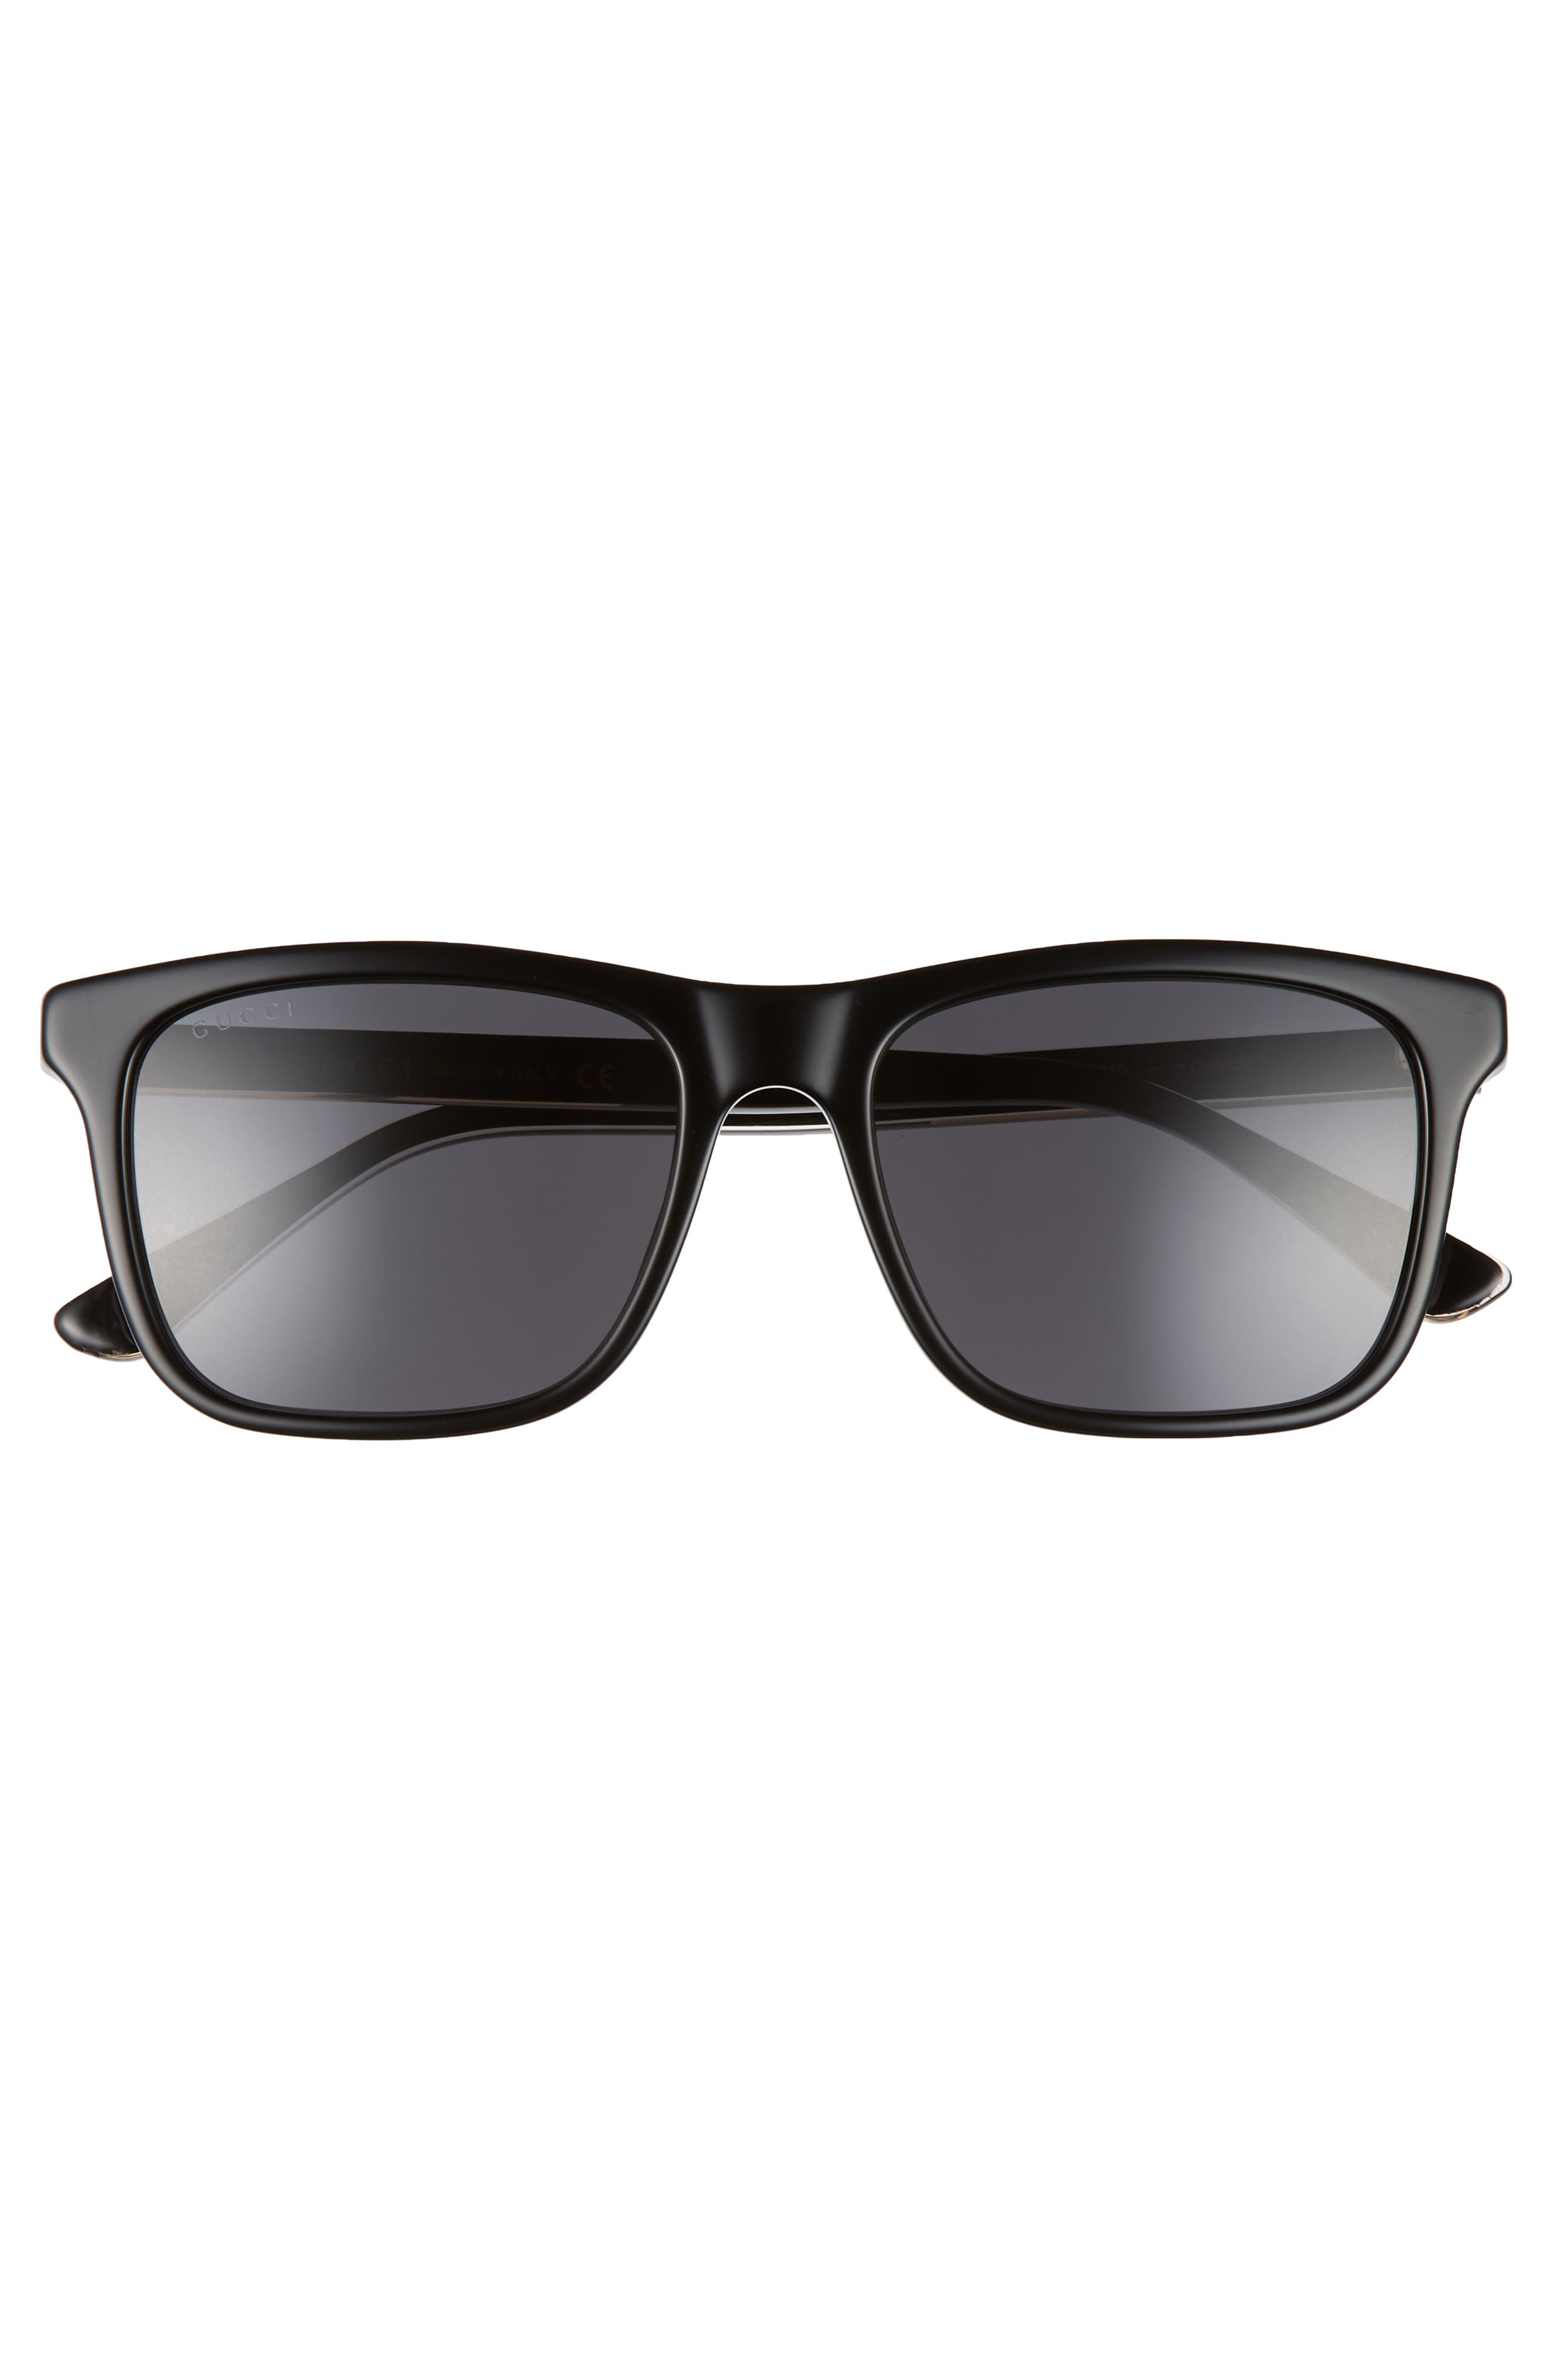 55mm Polarized Sunglasses,                             Alternate thumbnail 2, color,                             001